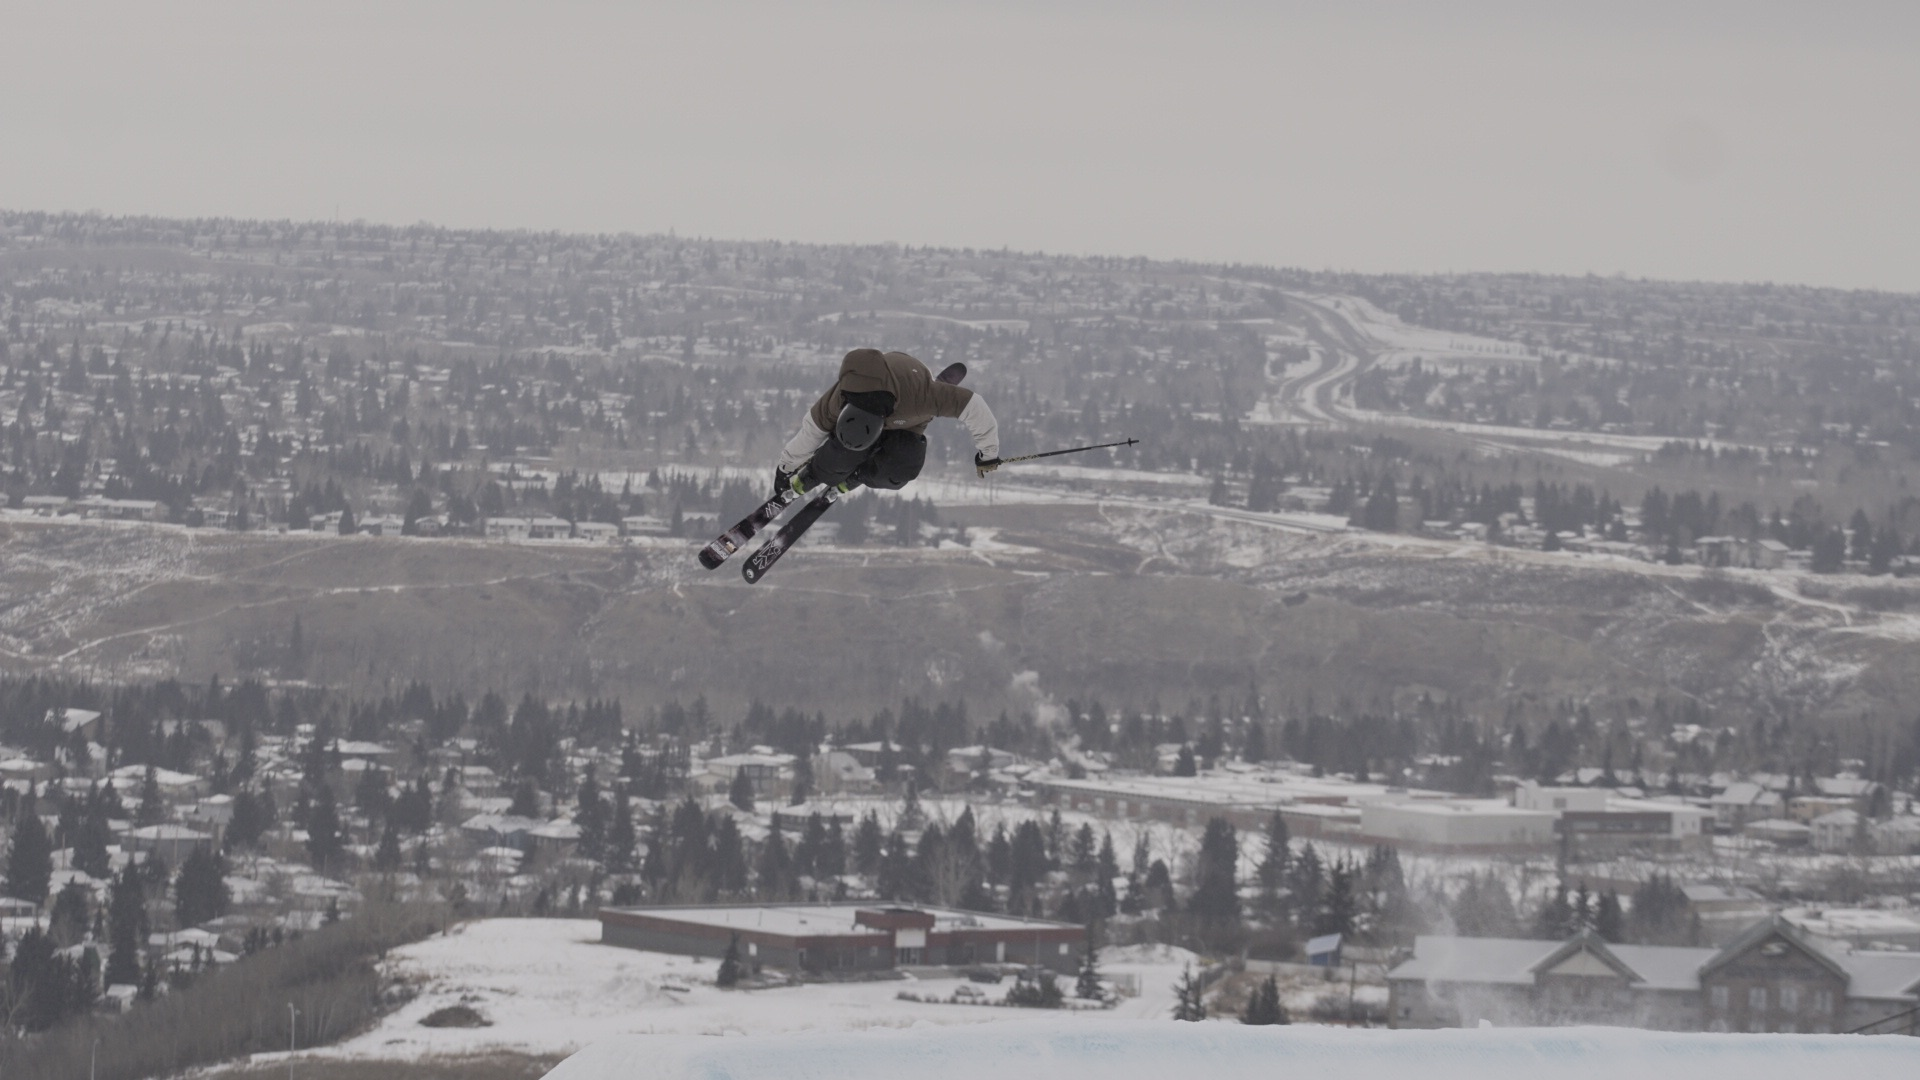 Flying over the city of Calgary!